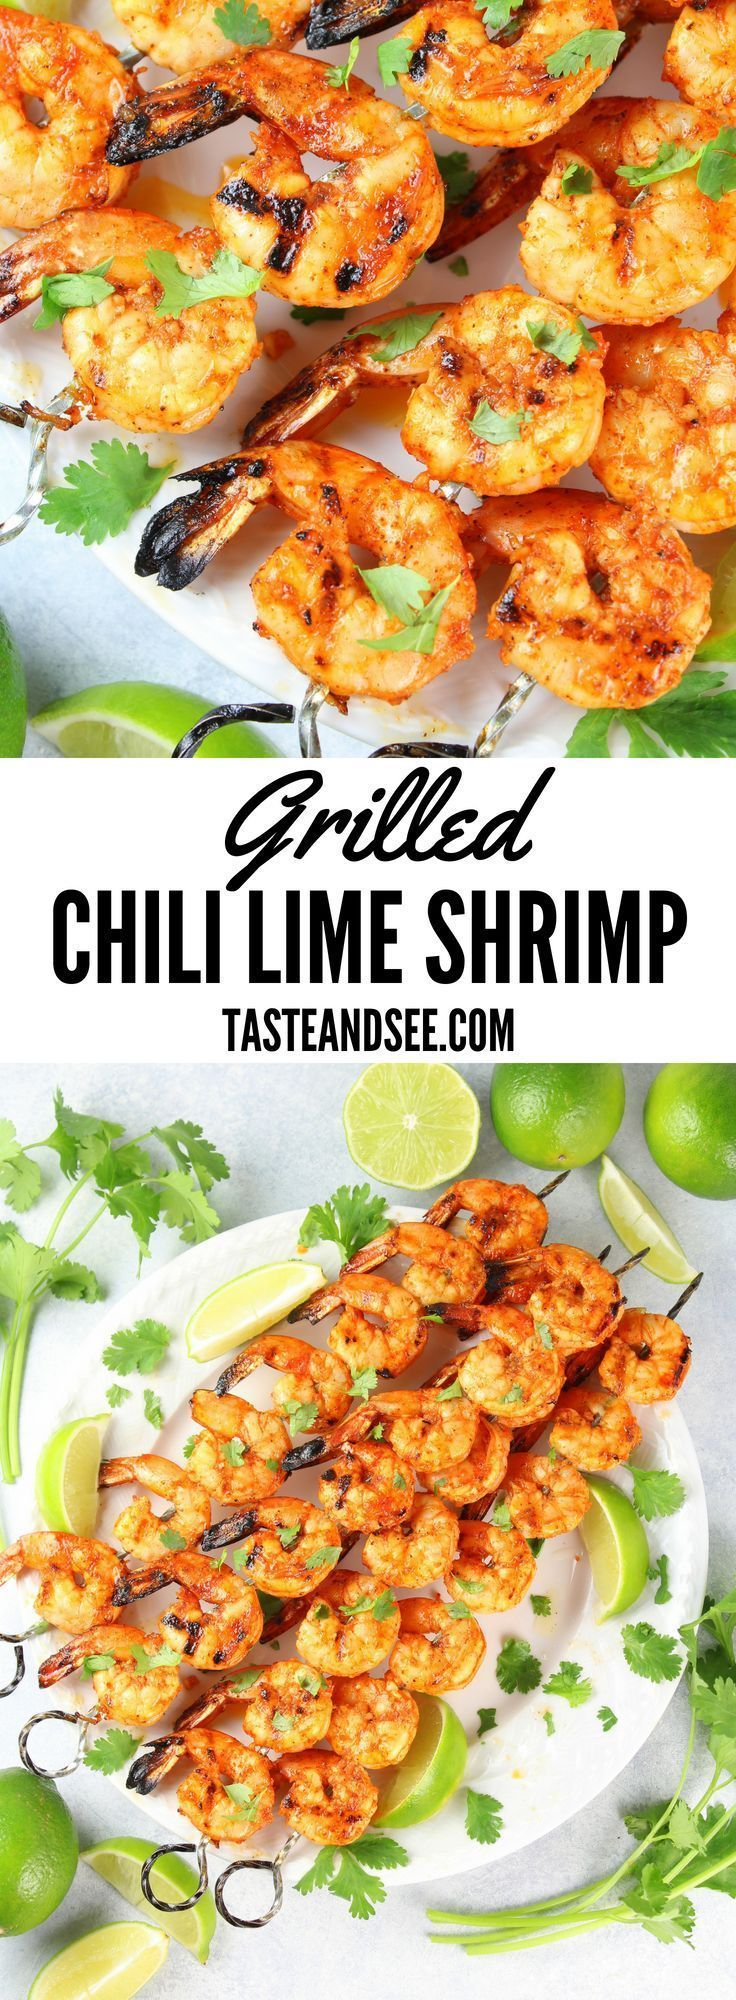 Grilled Chili Lime Shrimp | Taste And See